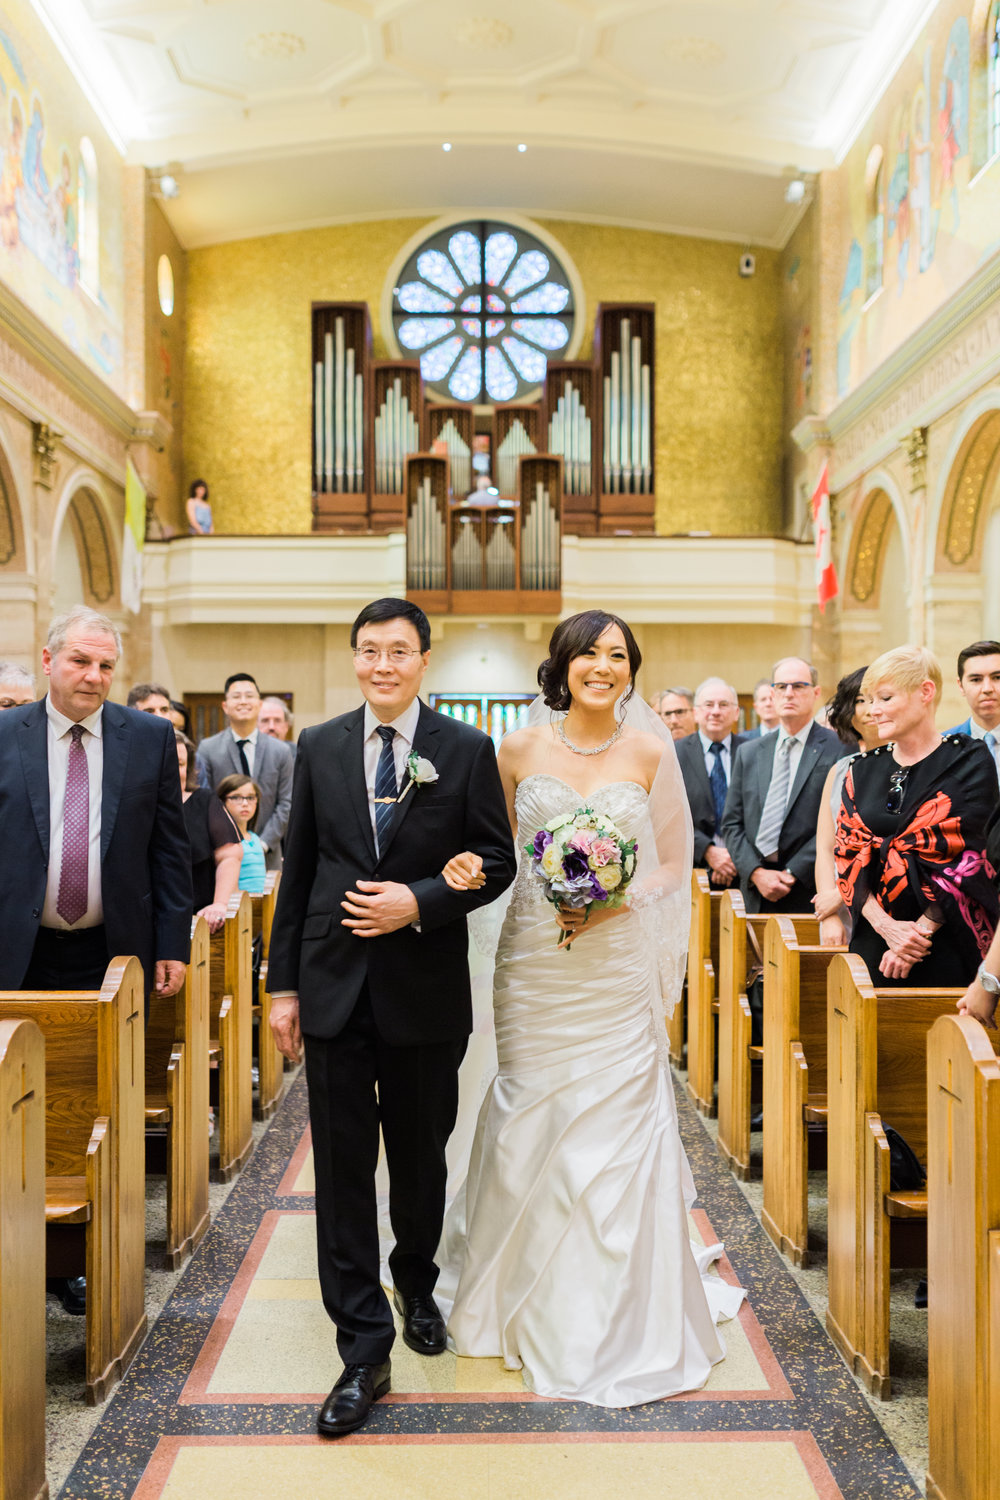 Toronto Fine Art Photographer - Lady of Sorrows Catholic Church Wedding - Ceremony-41.jpg